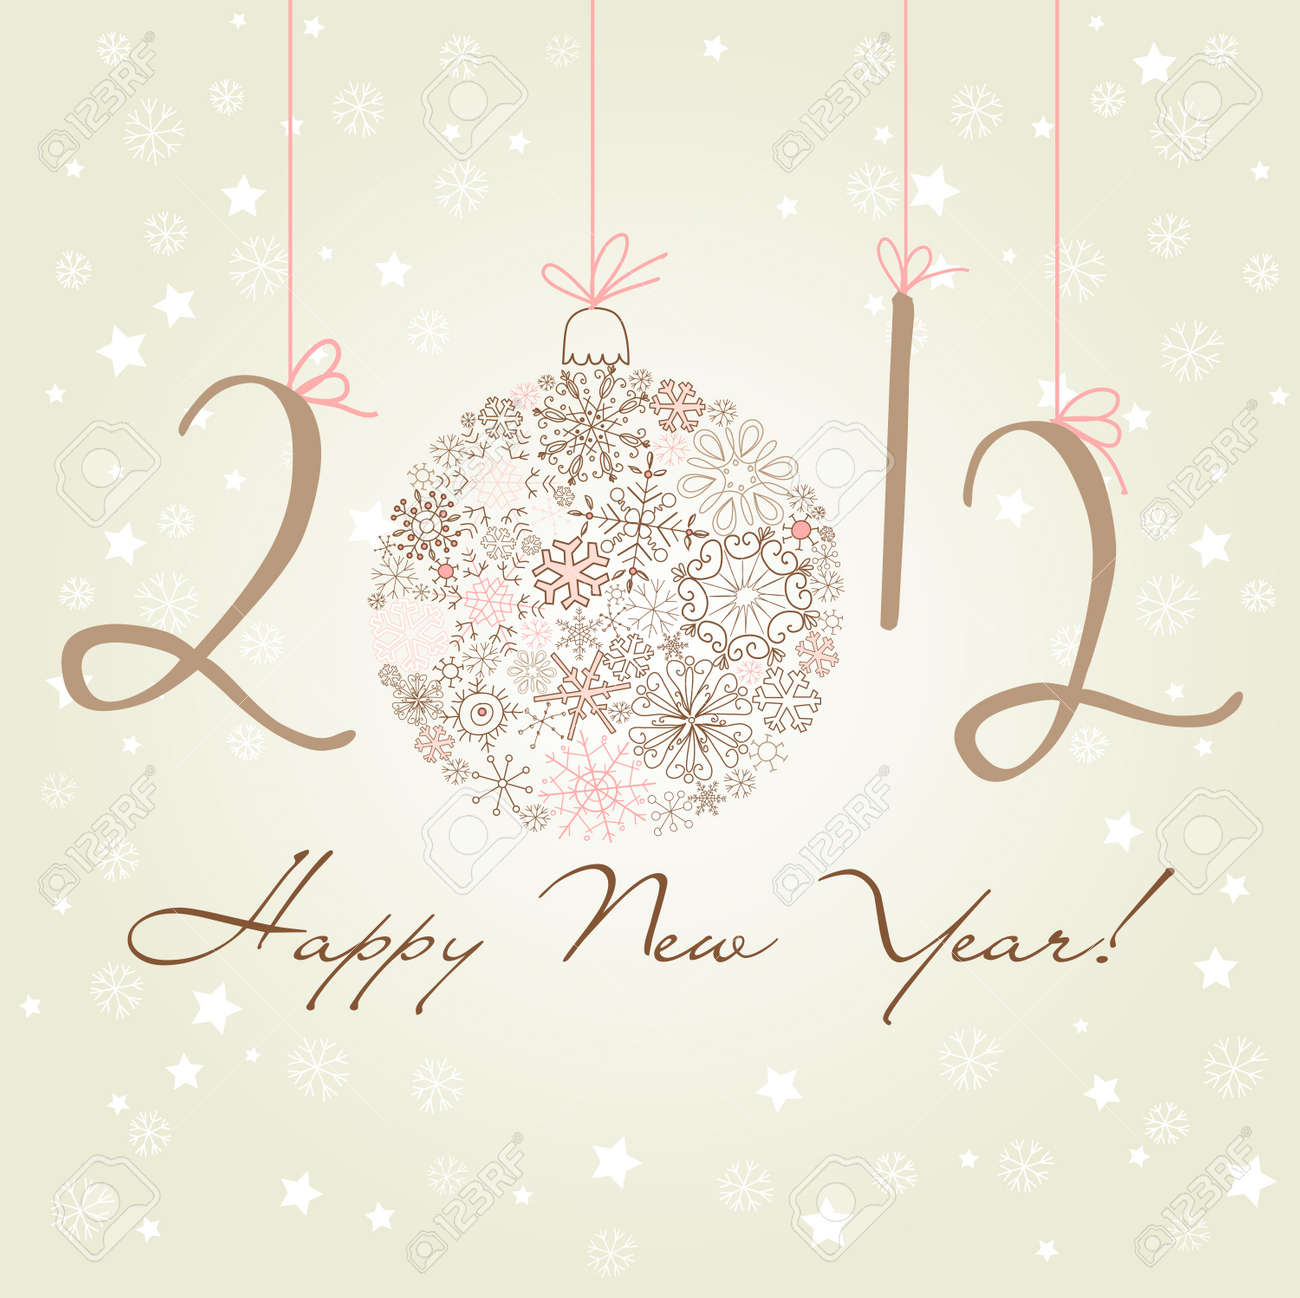 2012 Happy New Year background. Stock Vector - 12494183